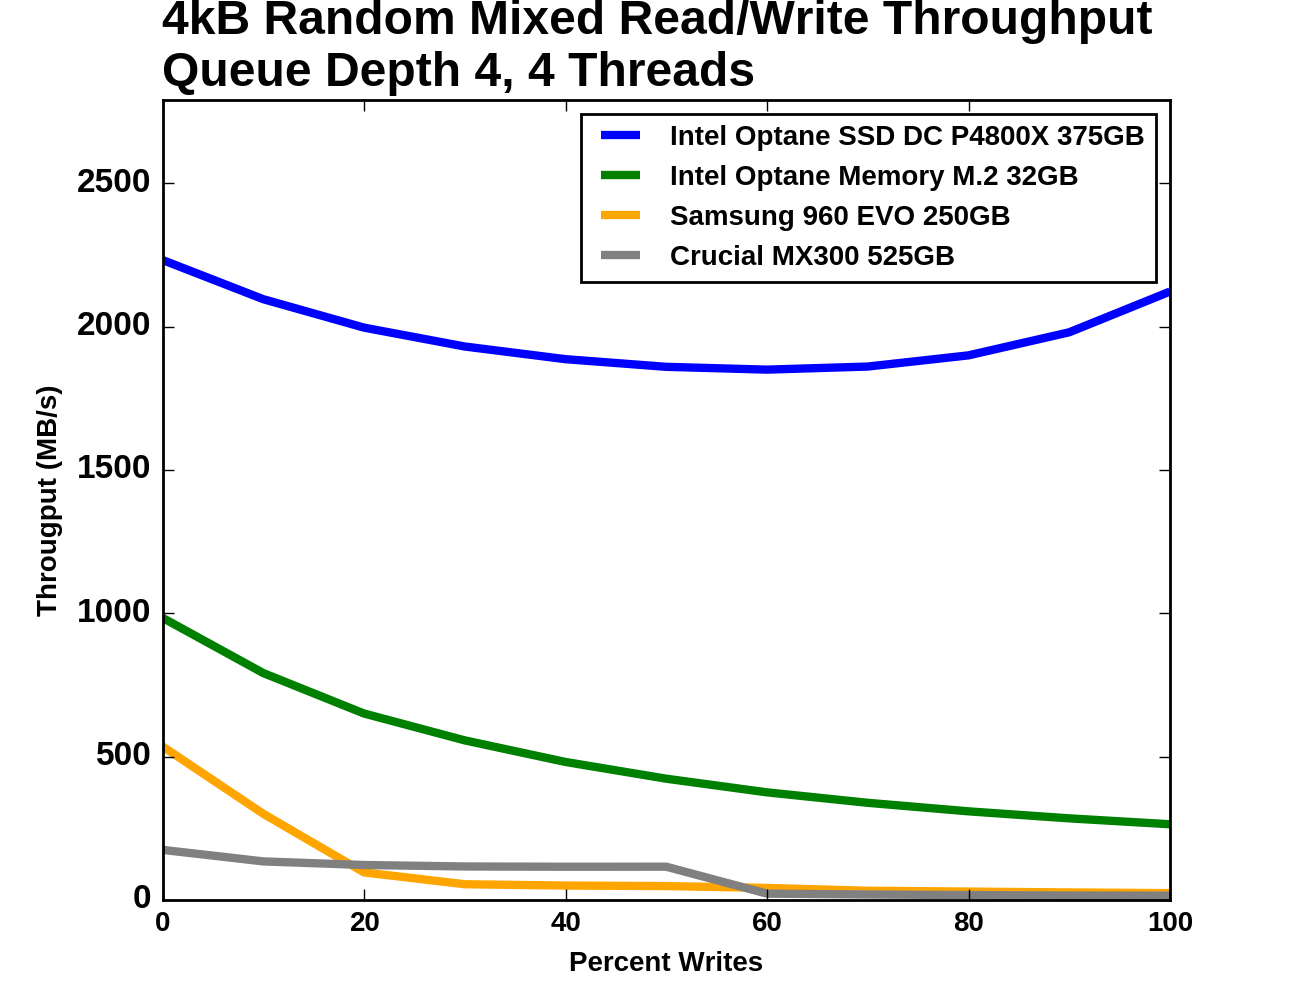 Mixed Random Read/Write Throughput